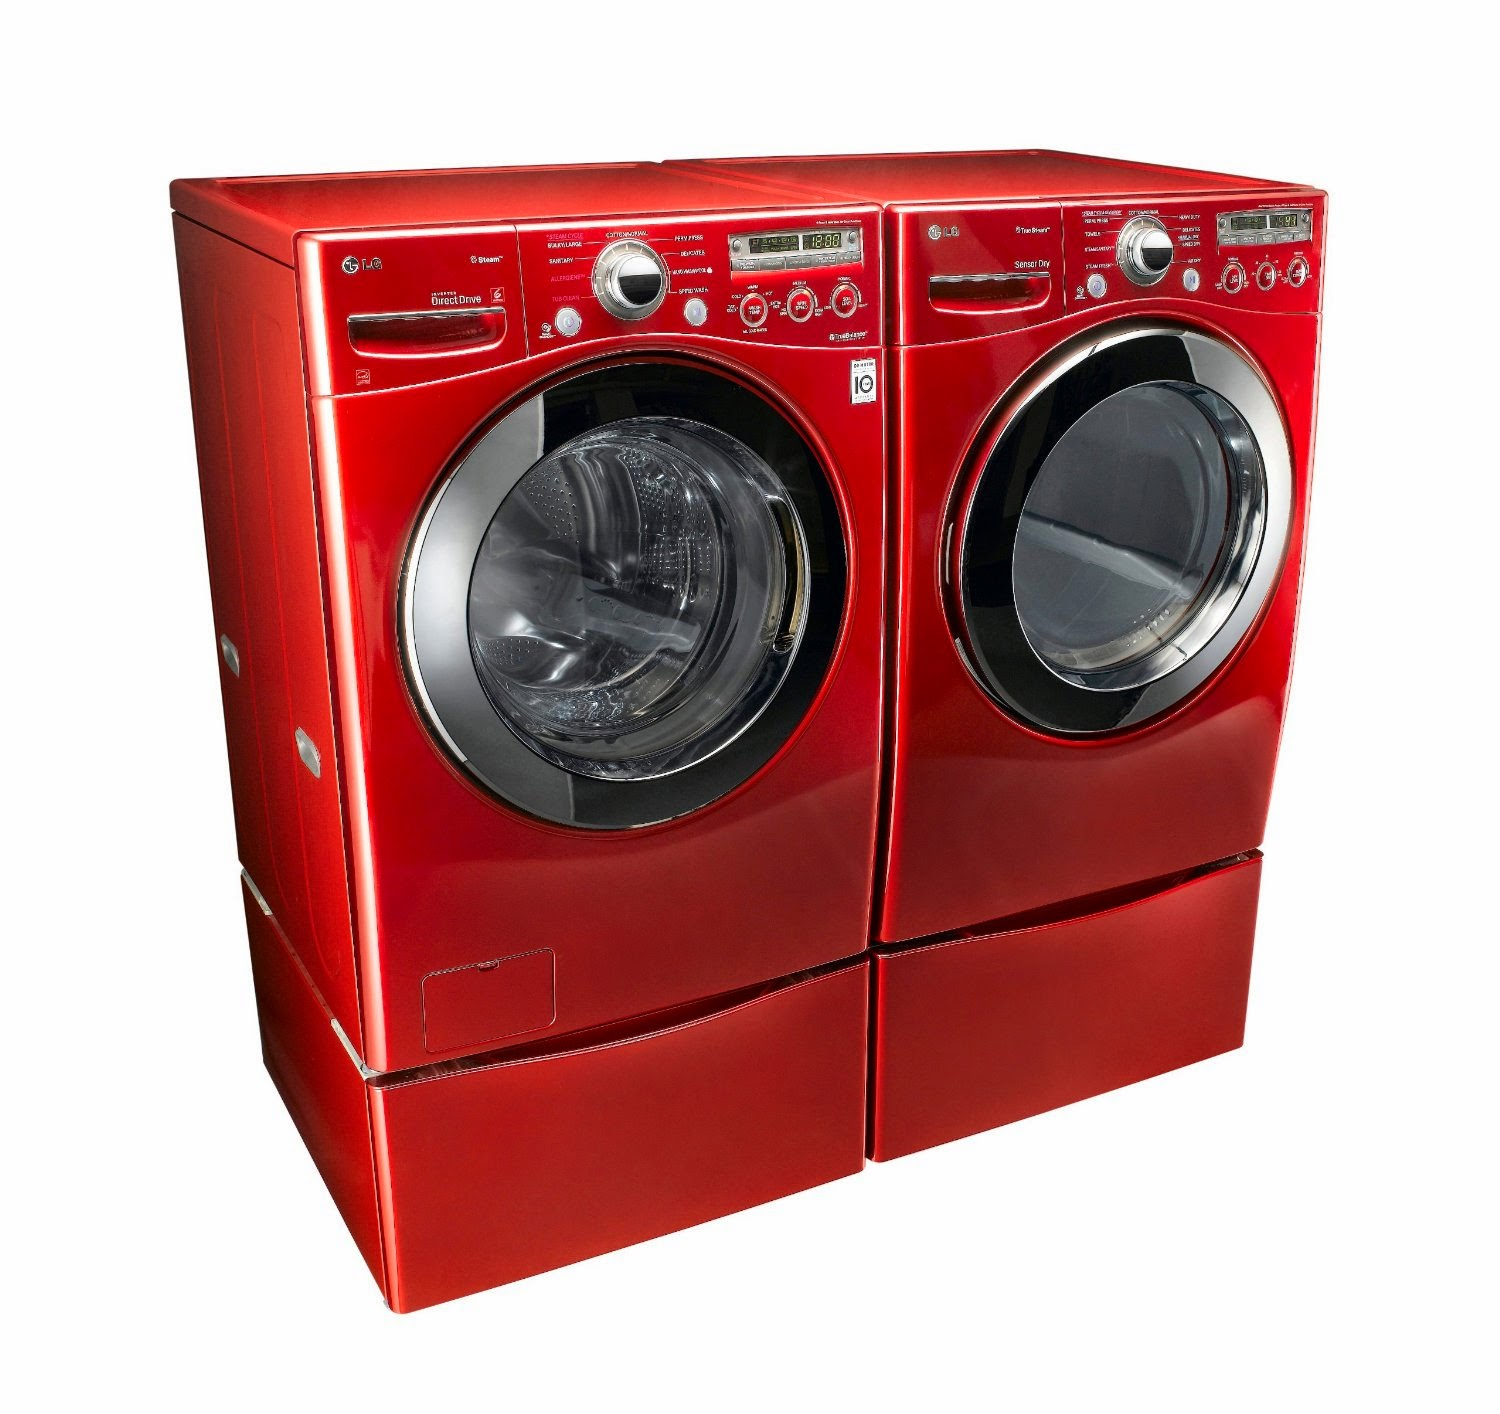 Best Price On Front Load Washer And Dryer Best Washer Dryer Lg Washer And Dryer Best Price